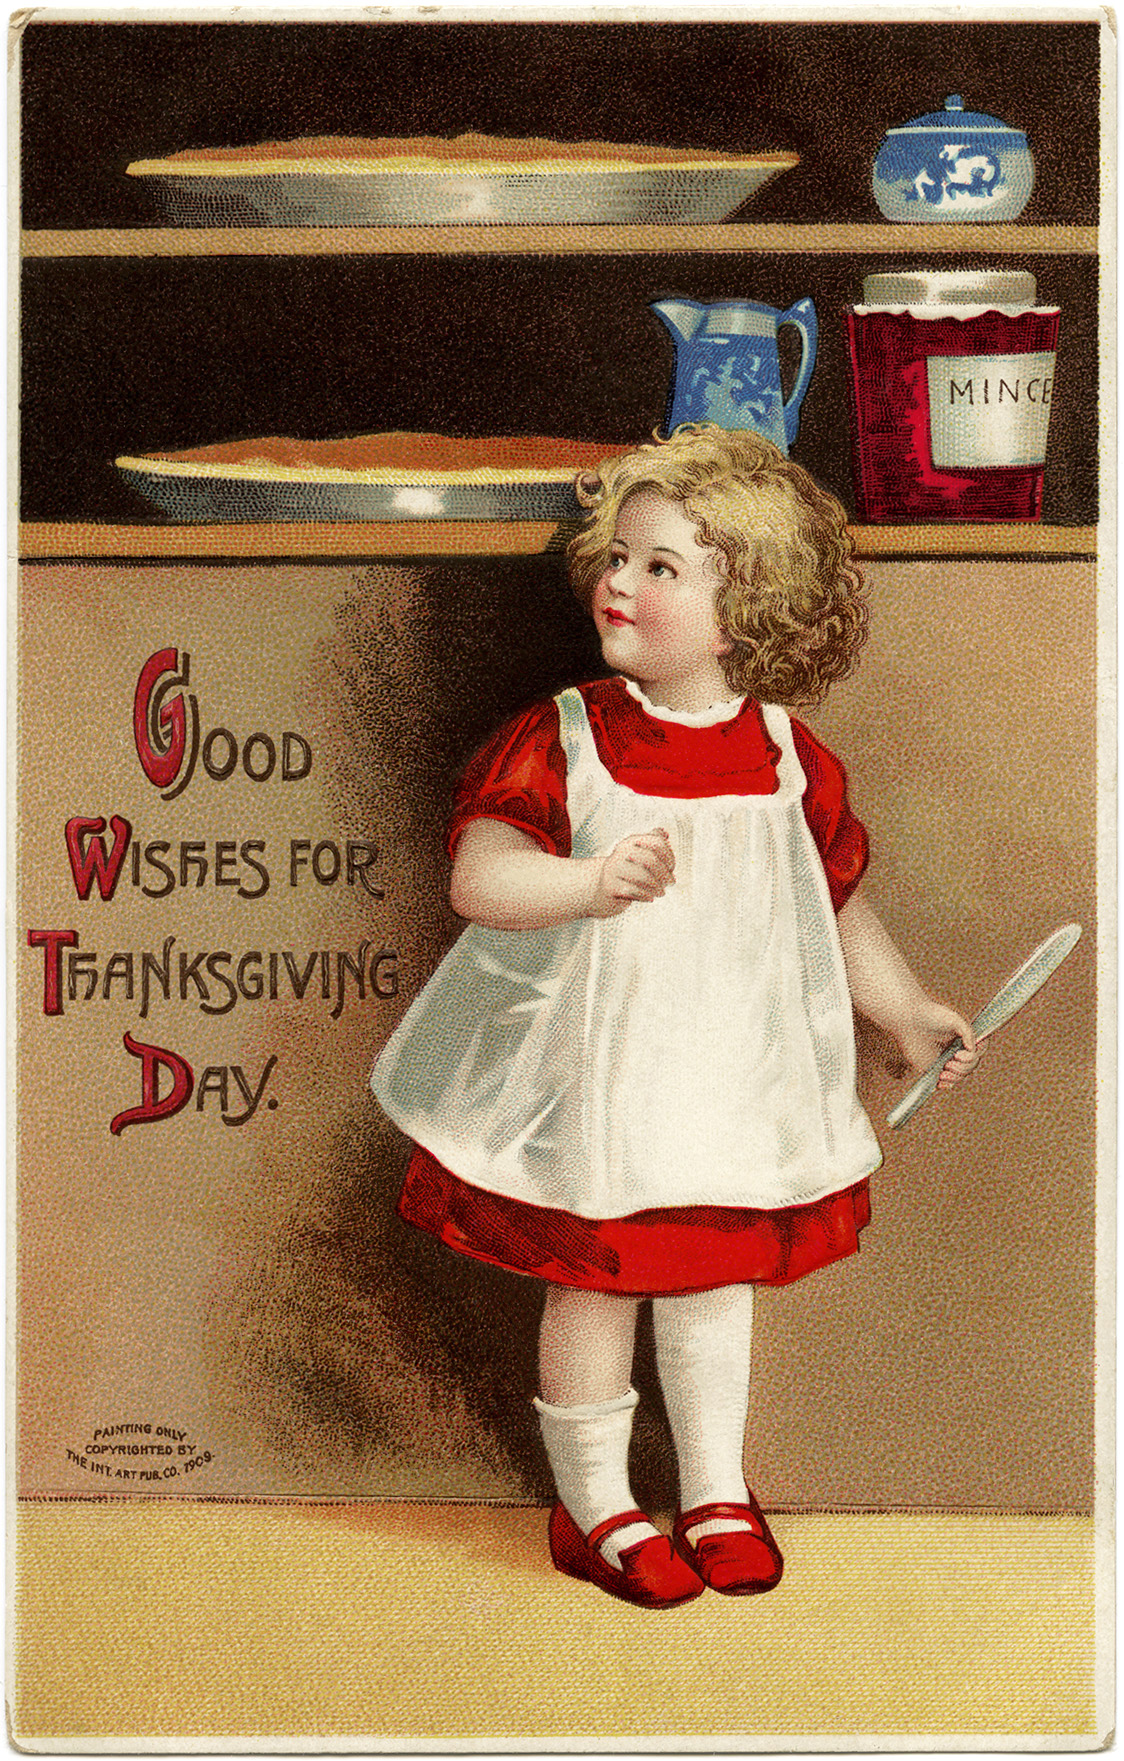 Vintage Clapsaddle Postcard Antique Thanksgiving Card Girl Baking Clipart Red Dress Wooden Spoon